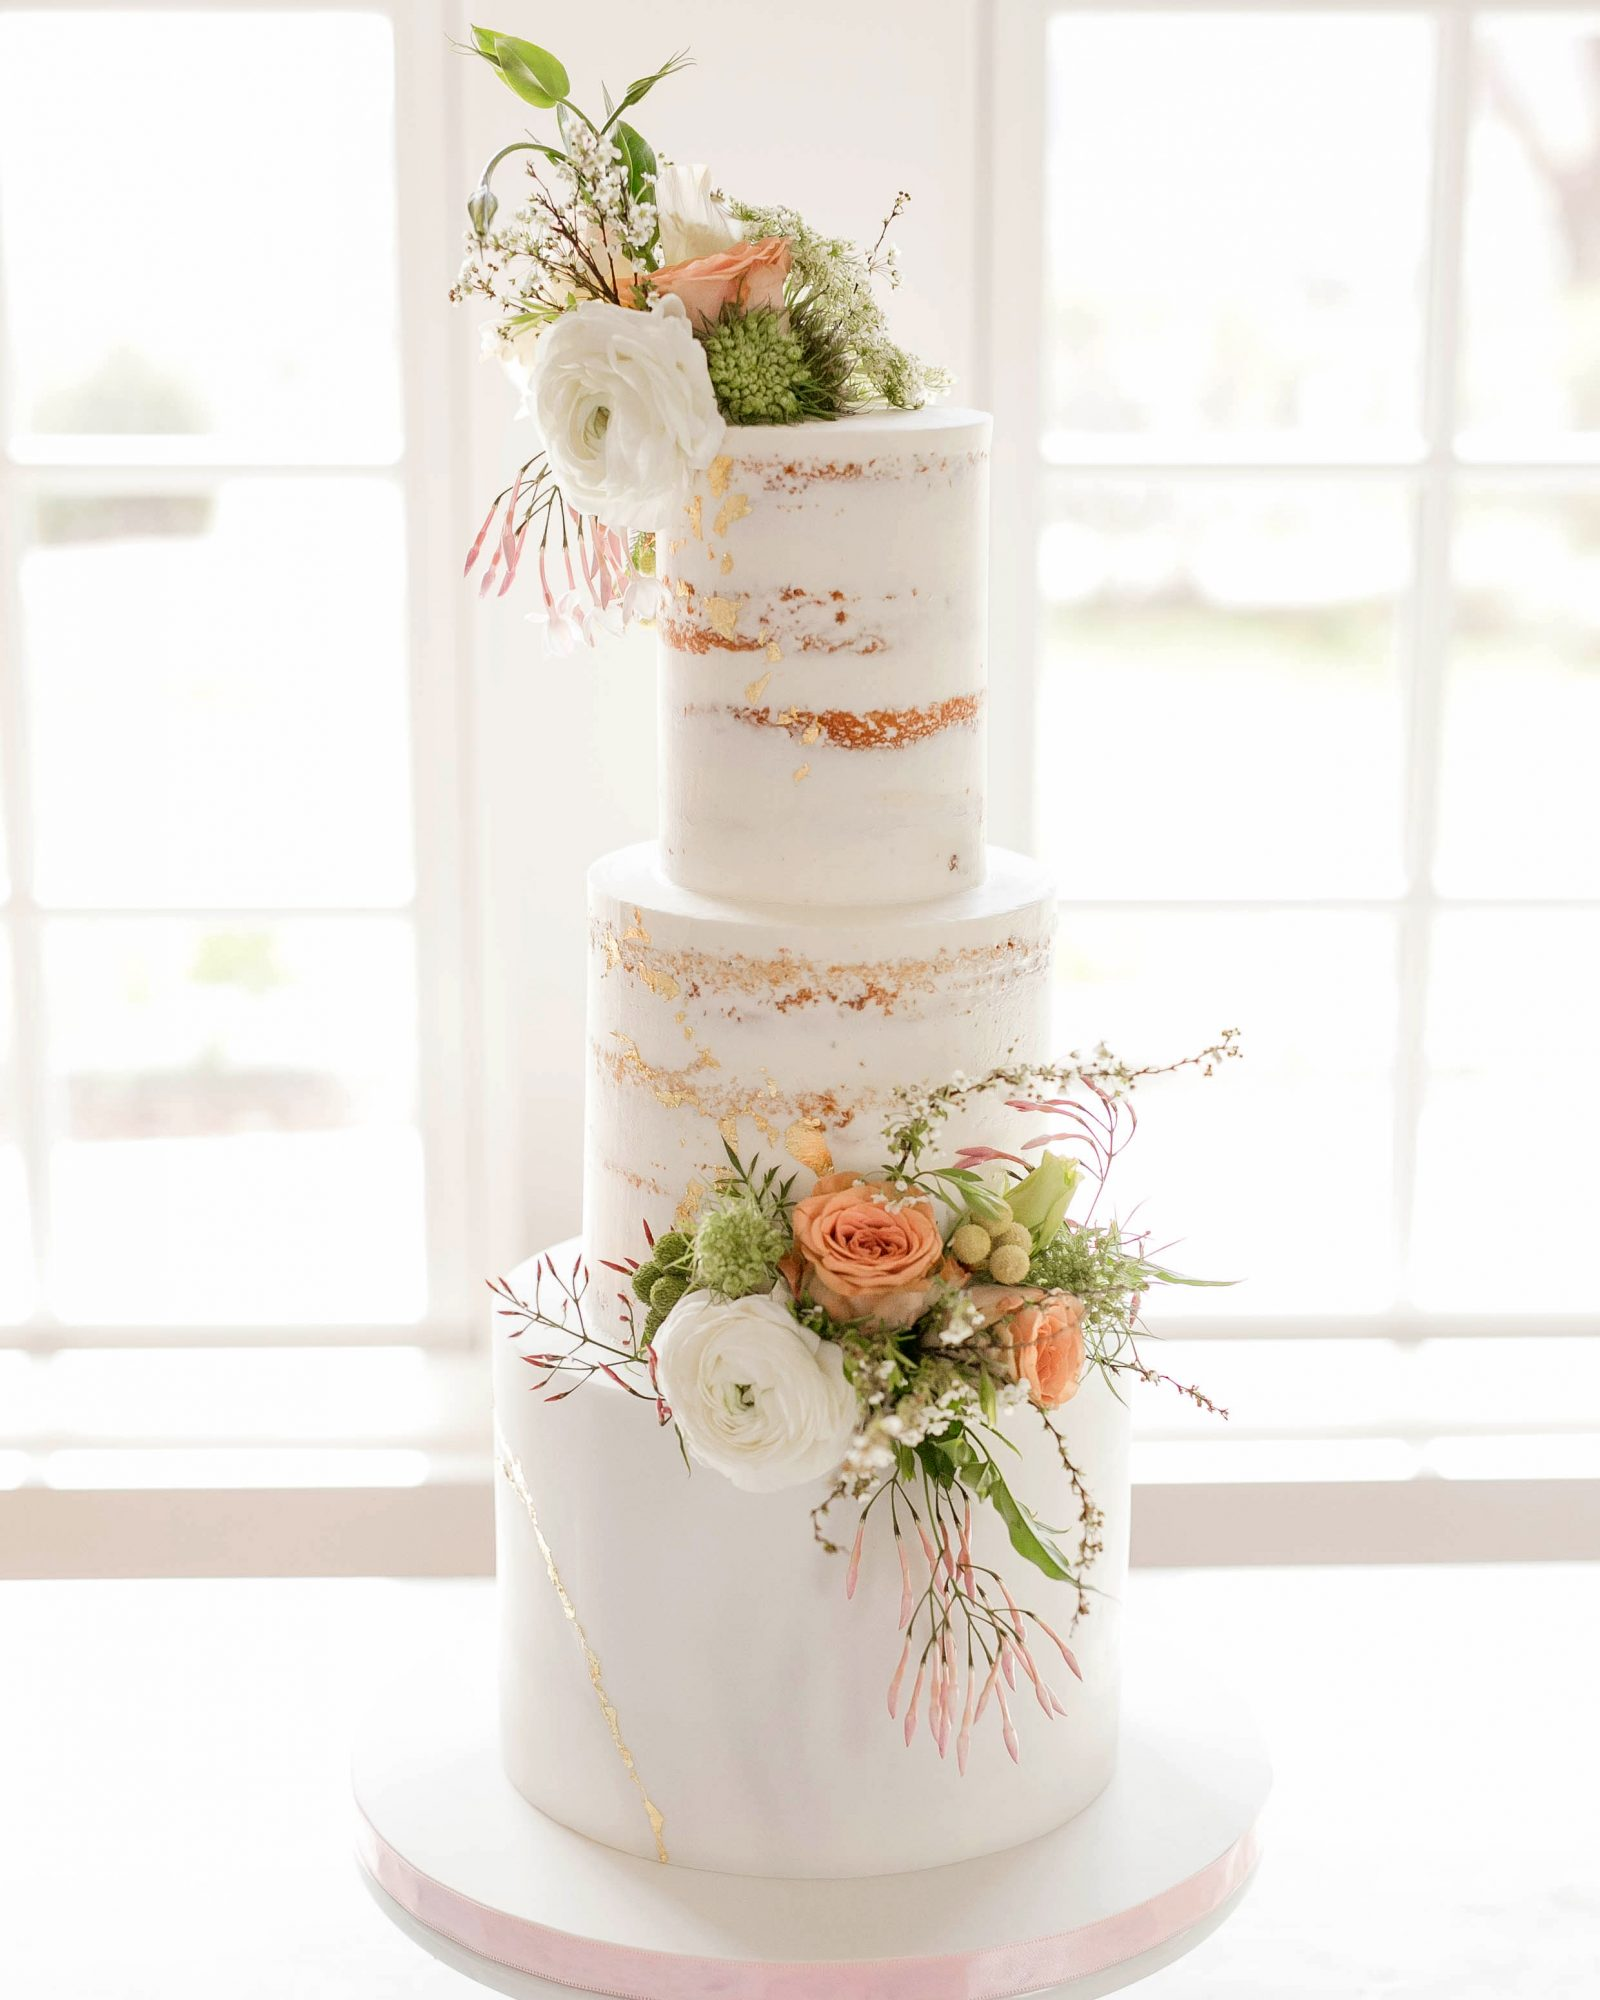 three tiered white frosted cake with floral decor